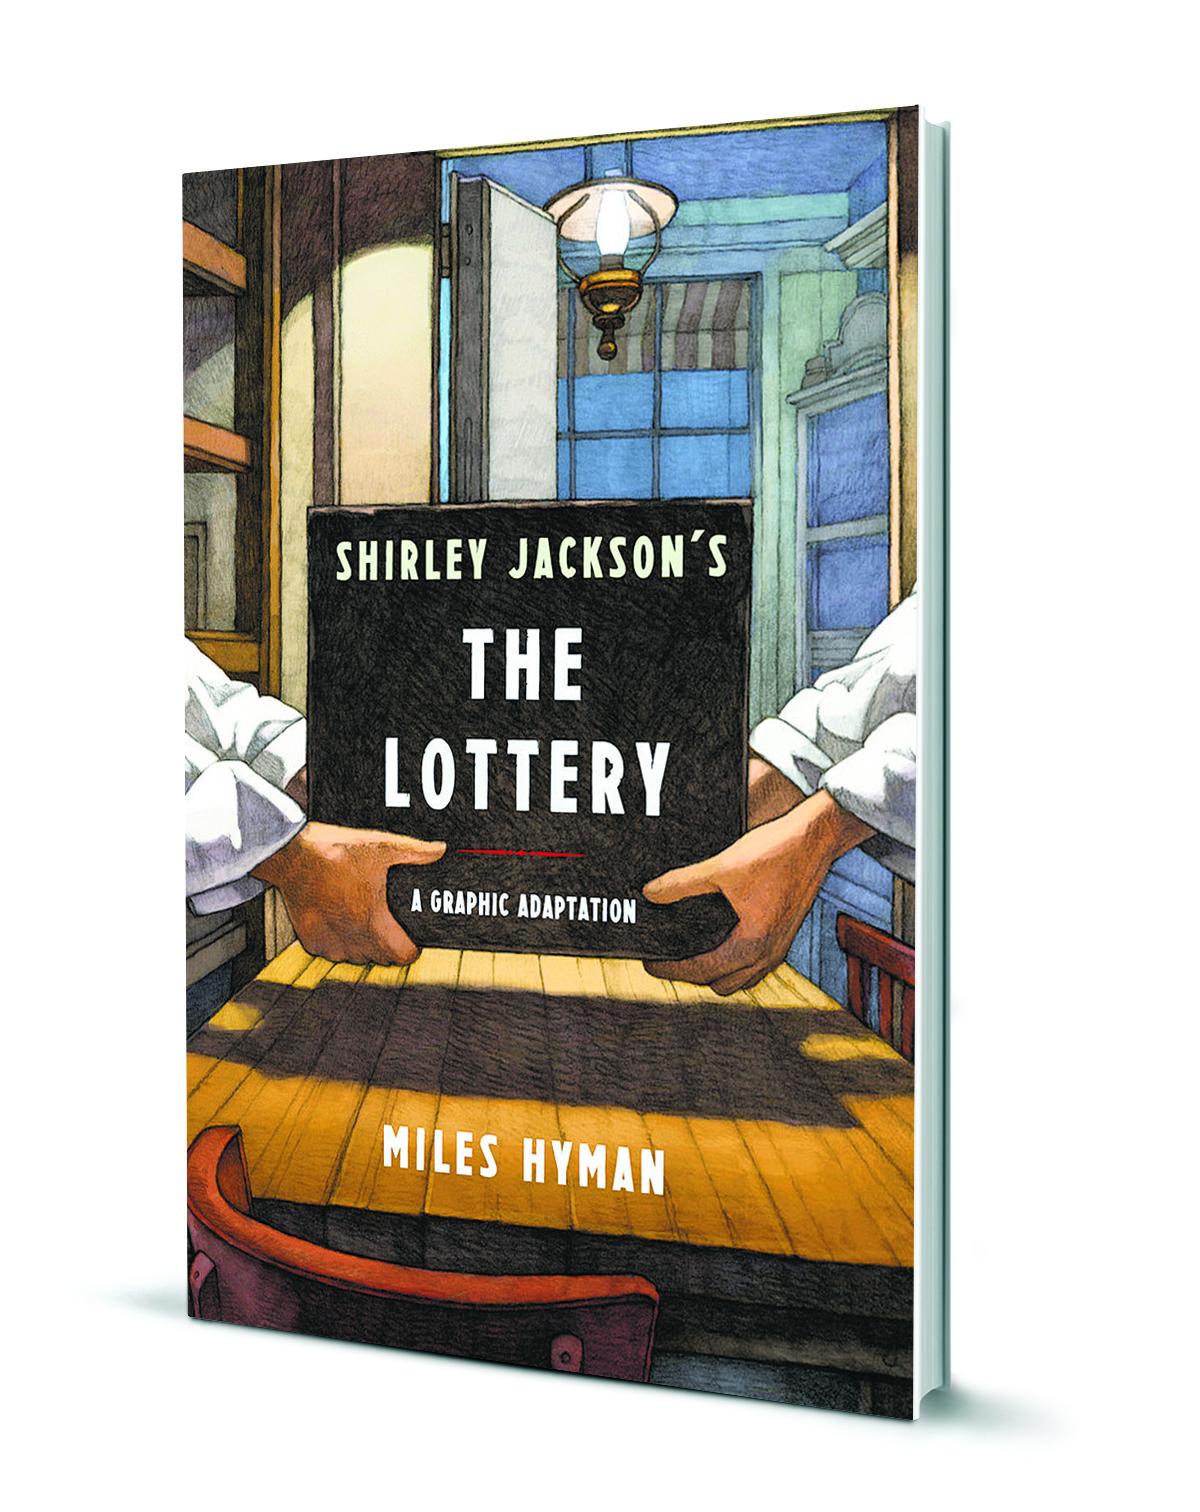 an analysis of the conflict in the lottery by shirley jackson Analysis of shirley jackson's the lottery - shirley jackson's famous short story, the lottery, was published in 1948 and remains to this day one of the most enduring and affecting american works in the literary canon.